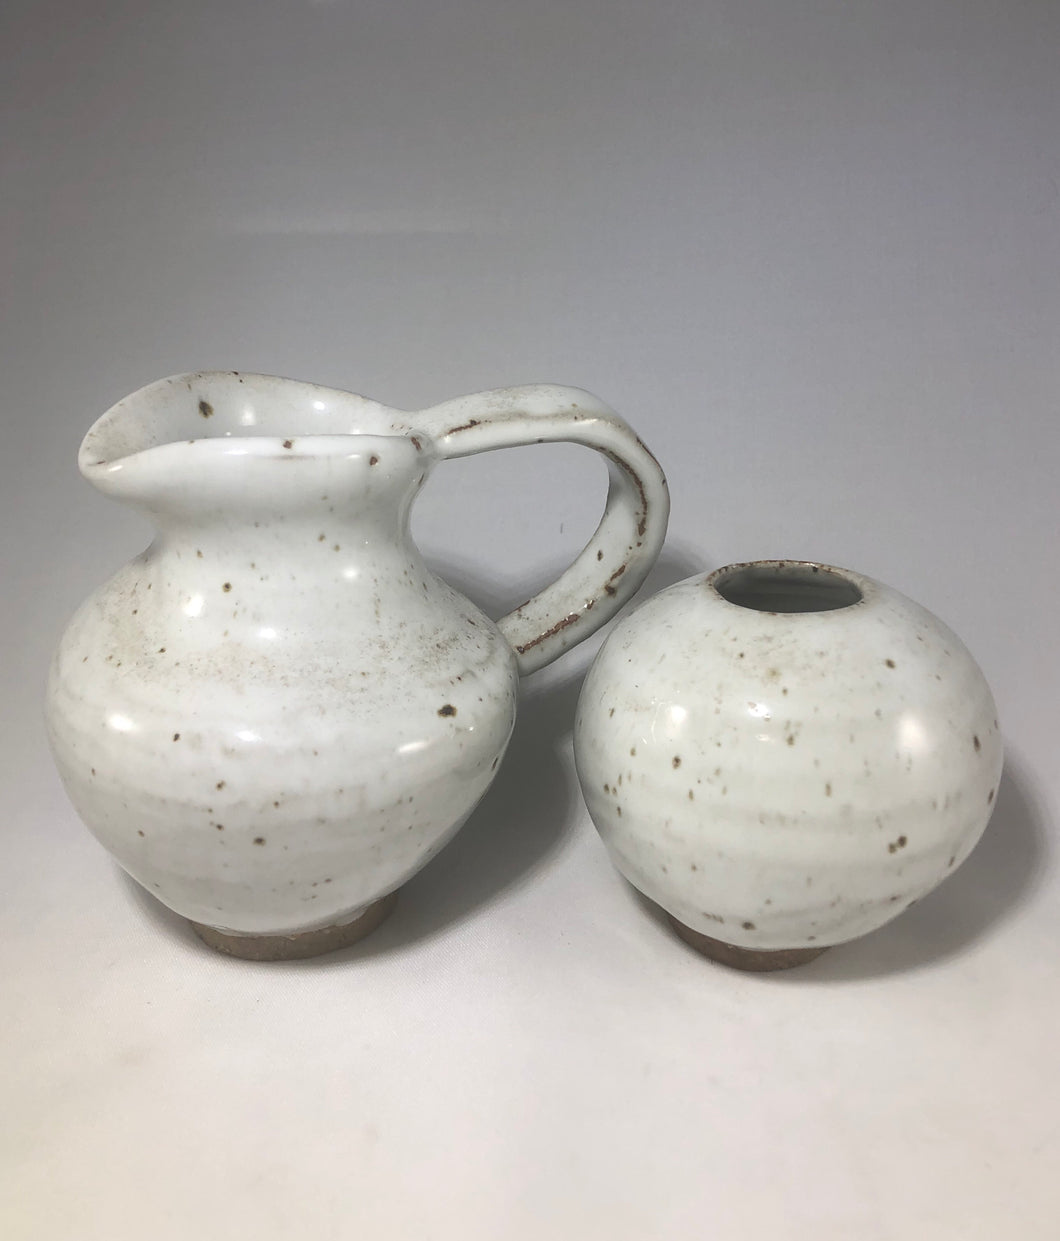 White pitcher and vase